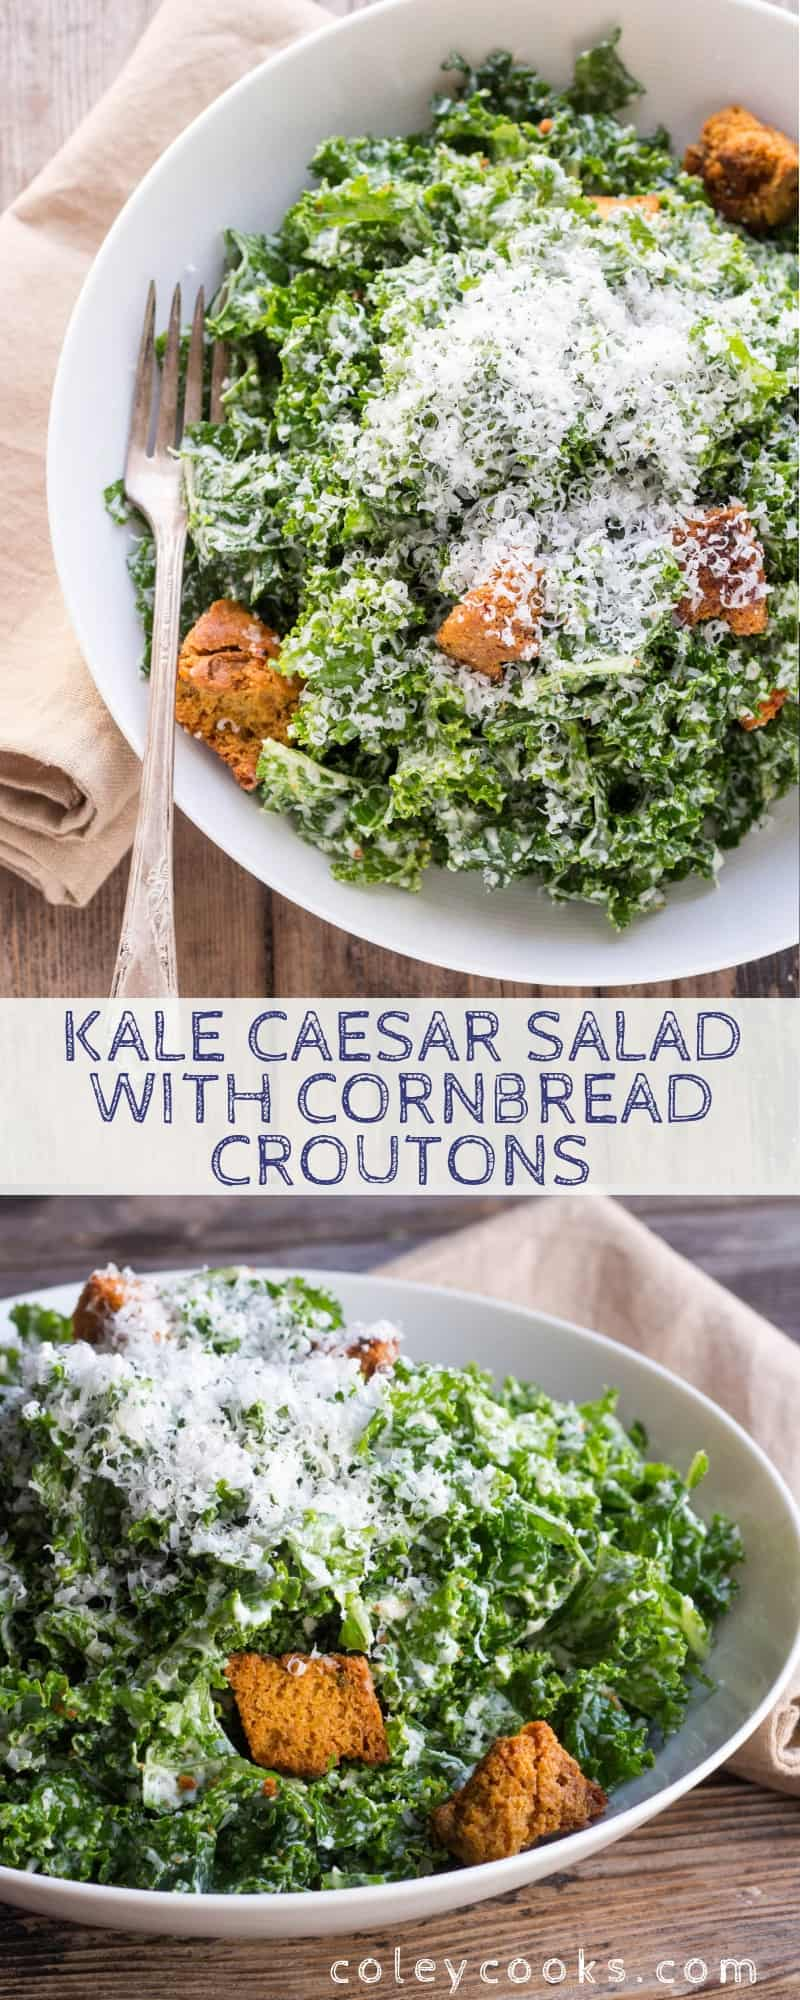 This easy recipe for Kale Caesar Salad is made with tender massaged kale and a traditional homemade Caesar dressing with anchovies. #easy #kale #massaged #caesar #salad #cornbread #croutons #anchovies #cheese #homemade  | ColeyCooks.com